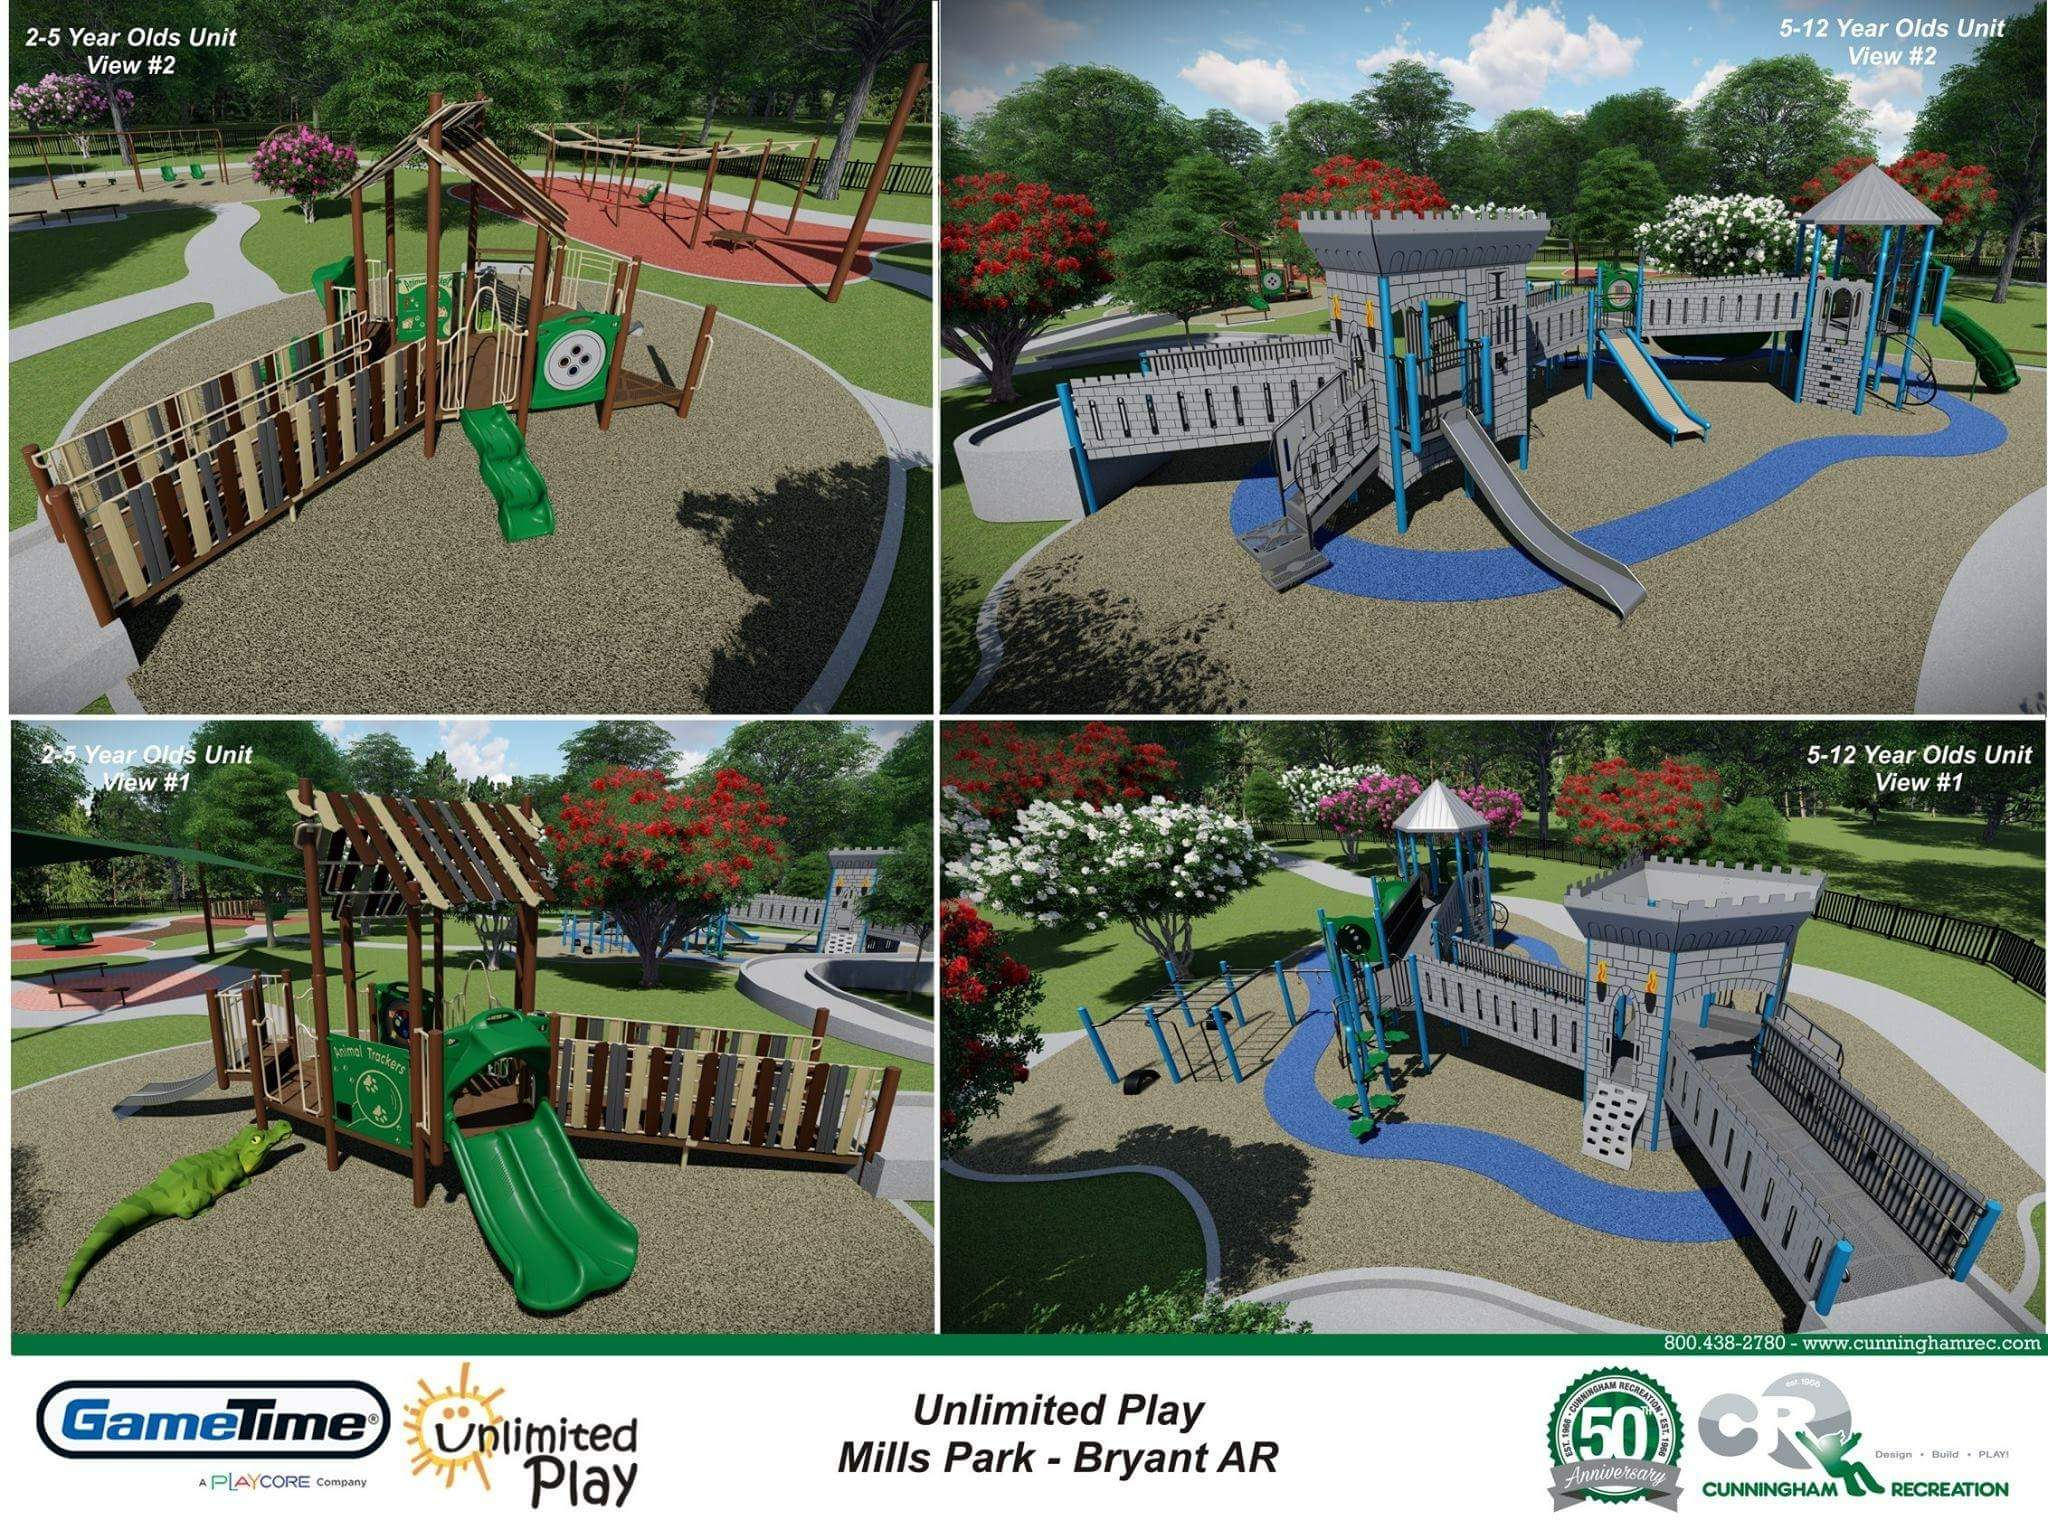 Bryant Parks Gets $250K Grant for All-Inclusive Playground at Mills